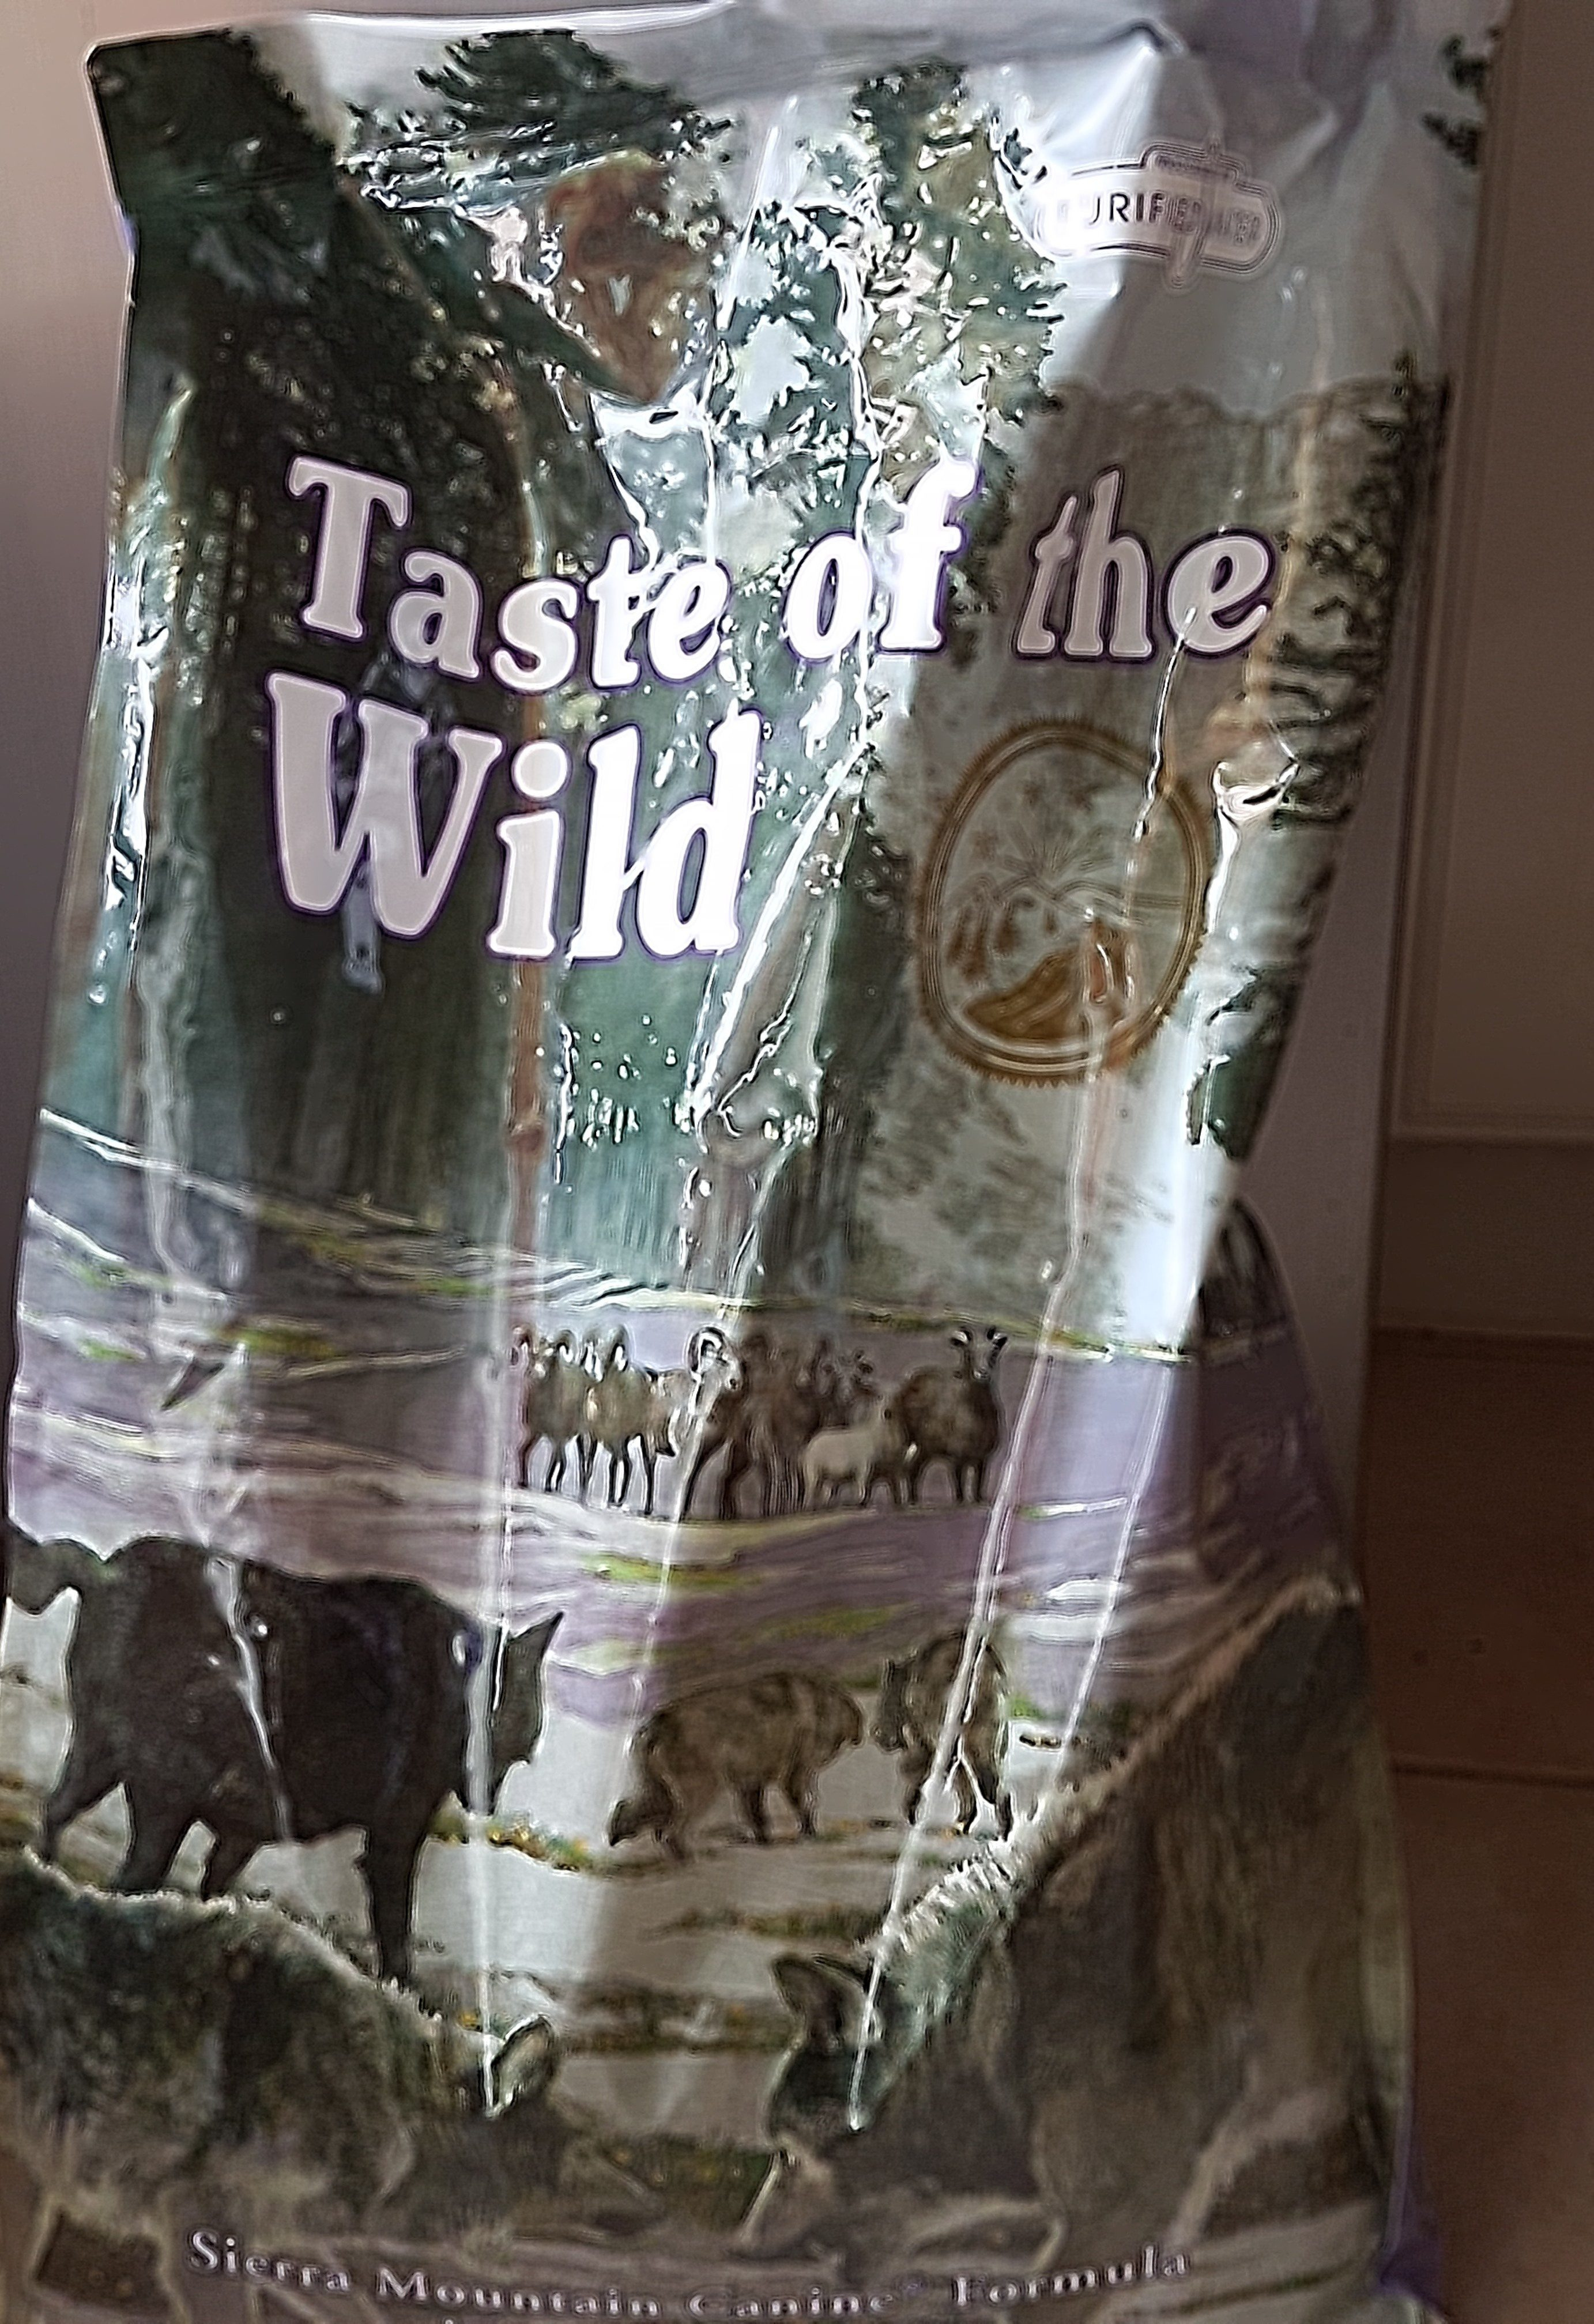 Taste of the wild sierra mountain canine - Product